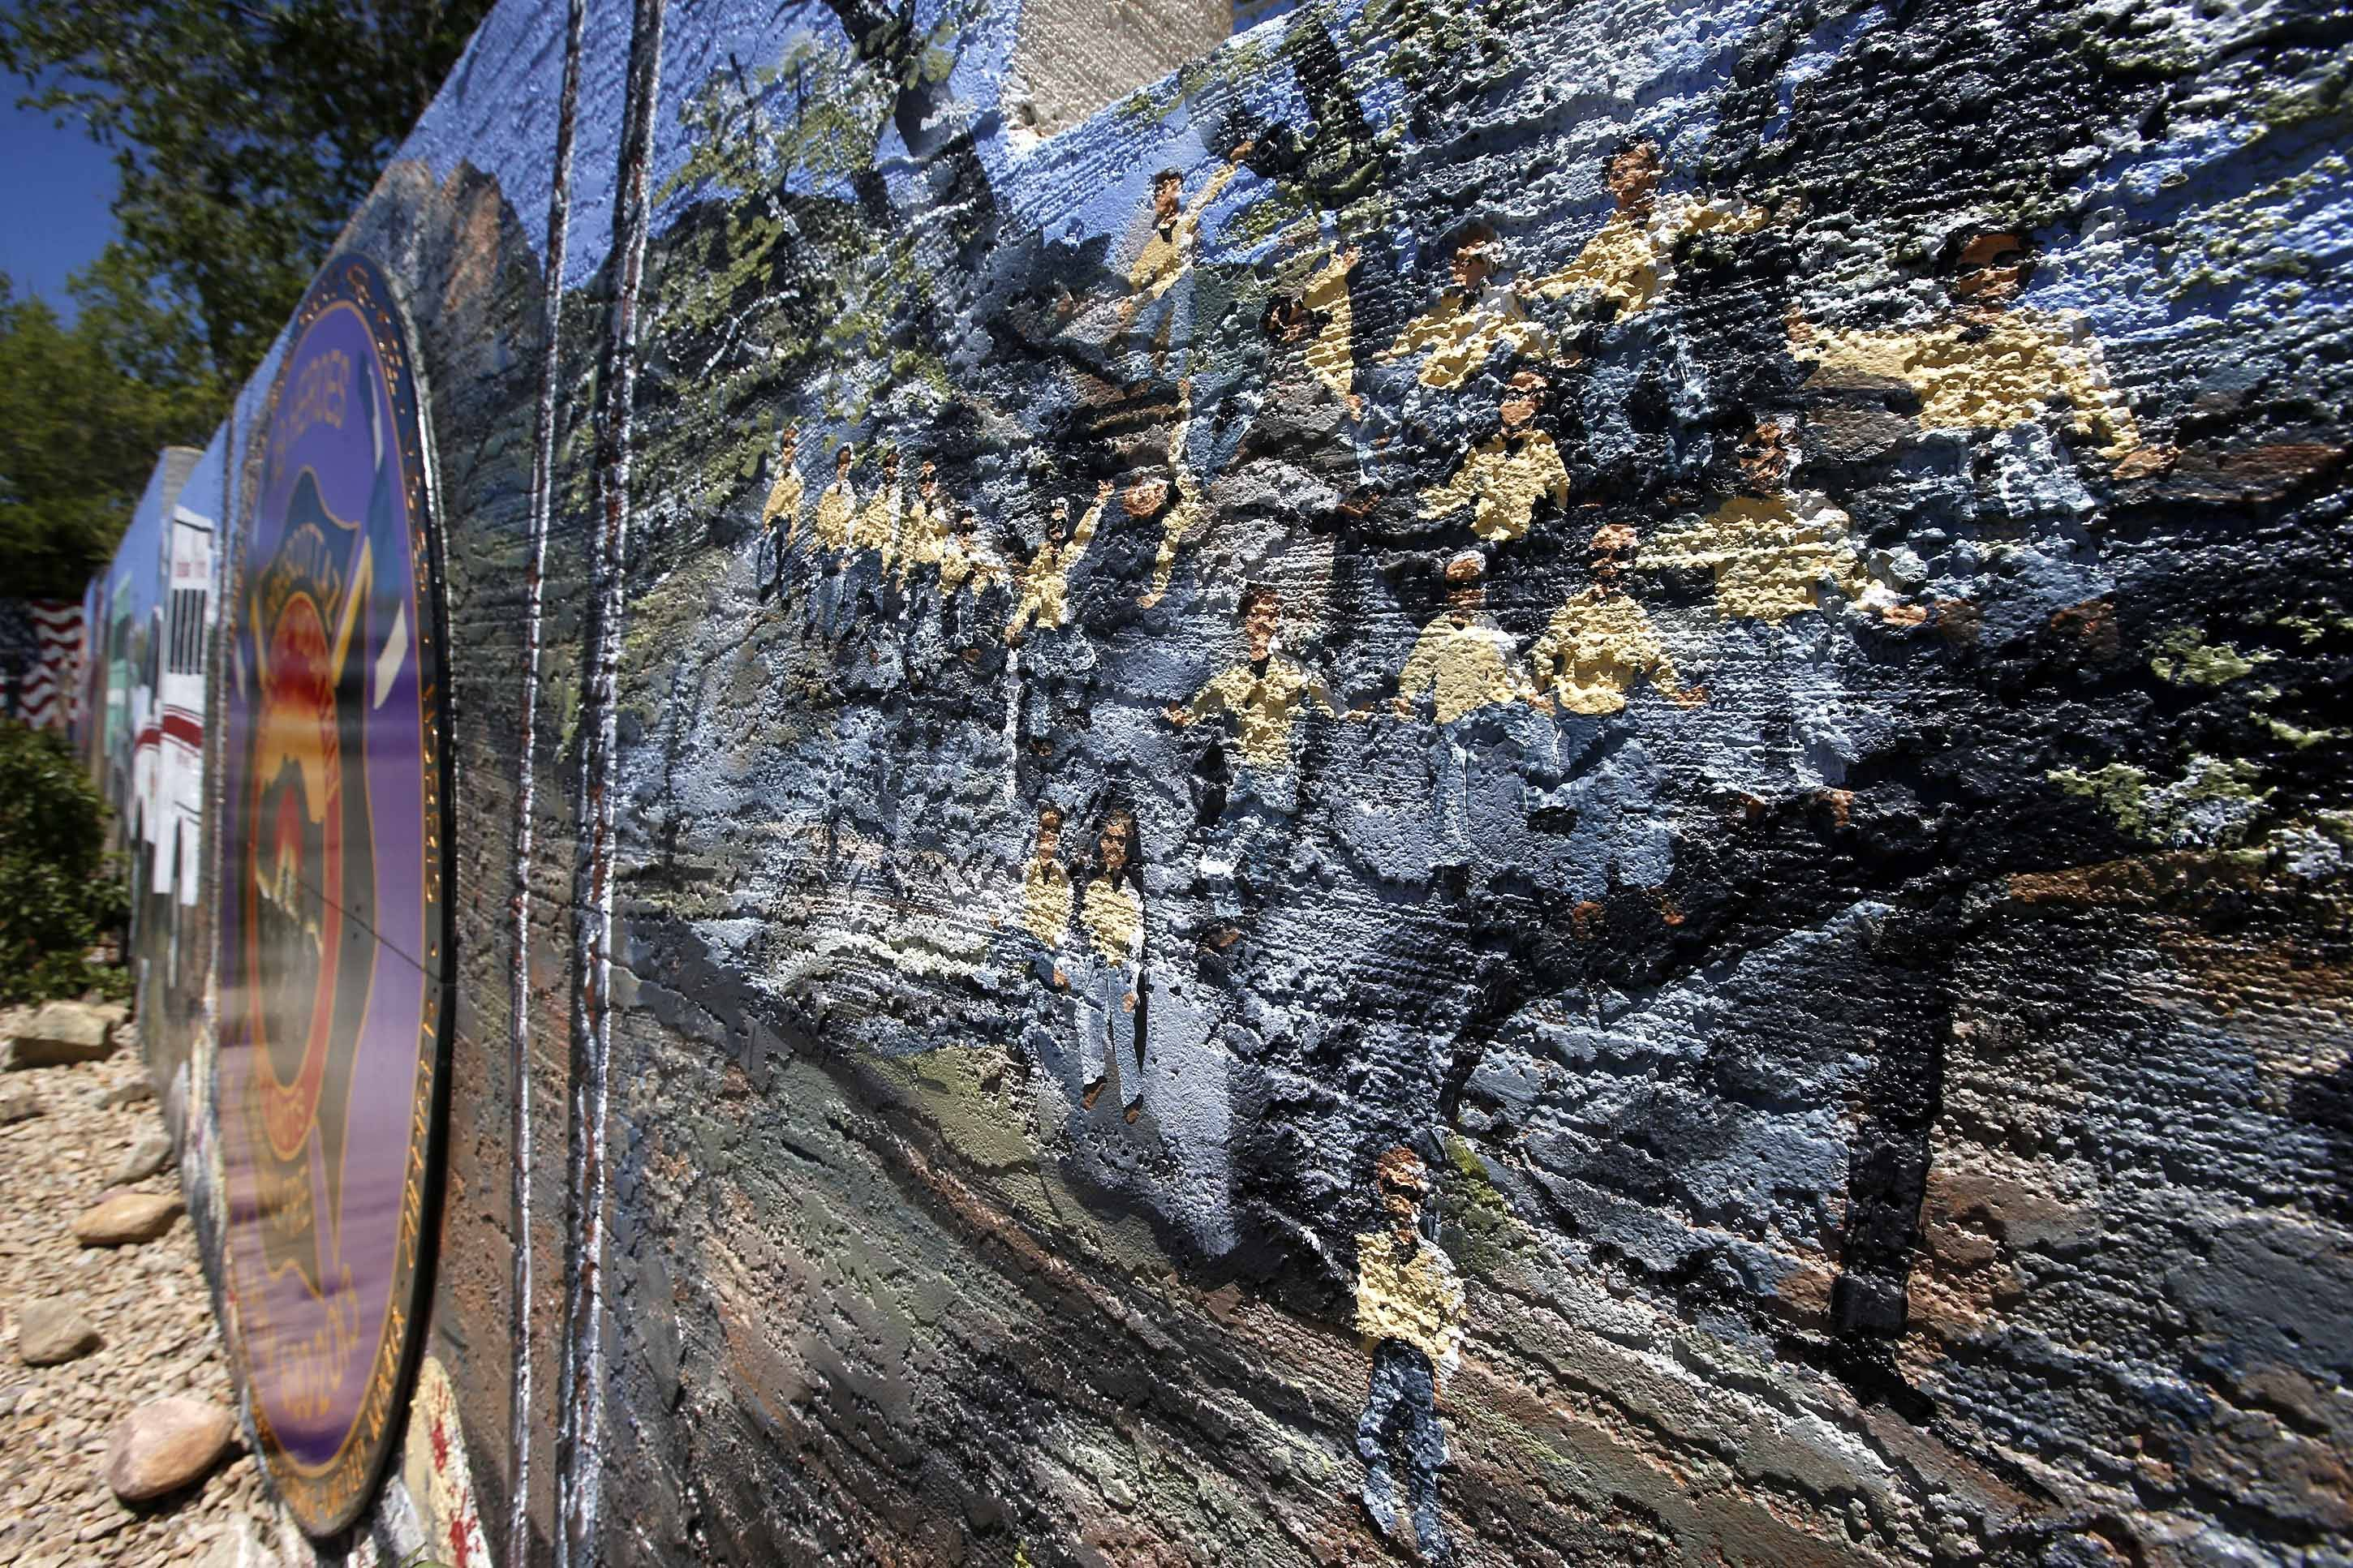 A painted mural by Juliana Hutchins covers a retaining wall memorial honoring the 19 Granite Mountain Hotshots who died nearly a year ago fighting an Arizona wildfire on Tuesday, June 24, 2014, in Prescott, Ariz. The mural also honors other first responders.